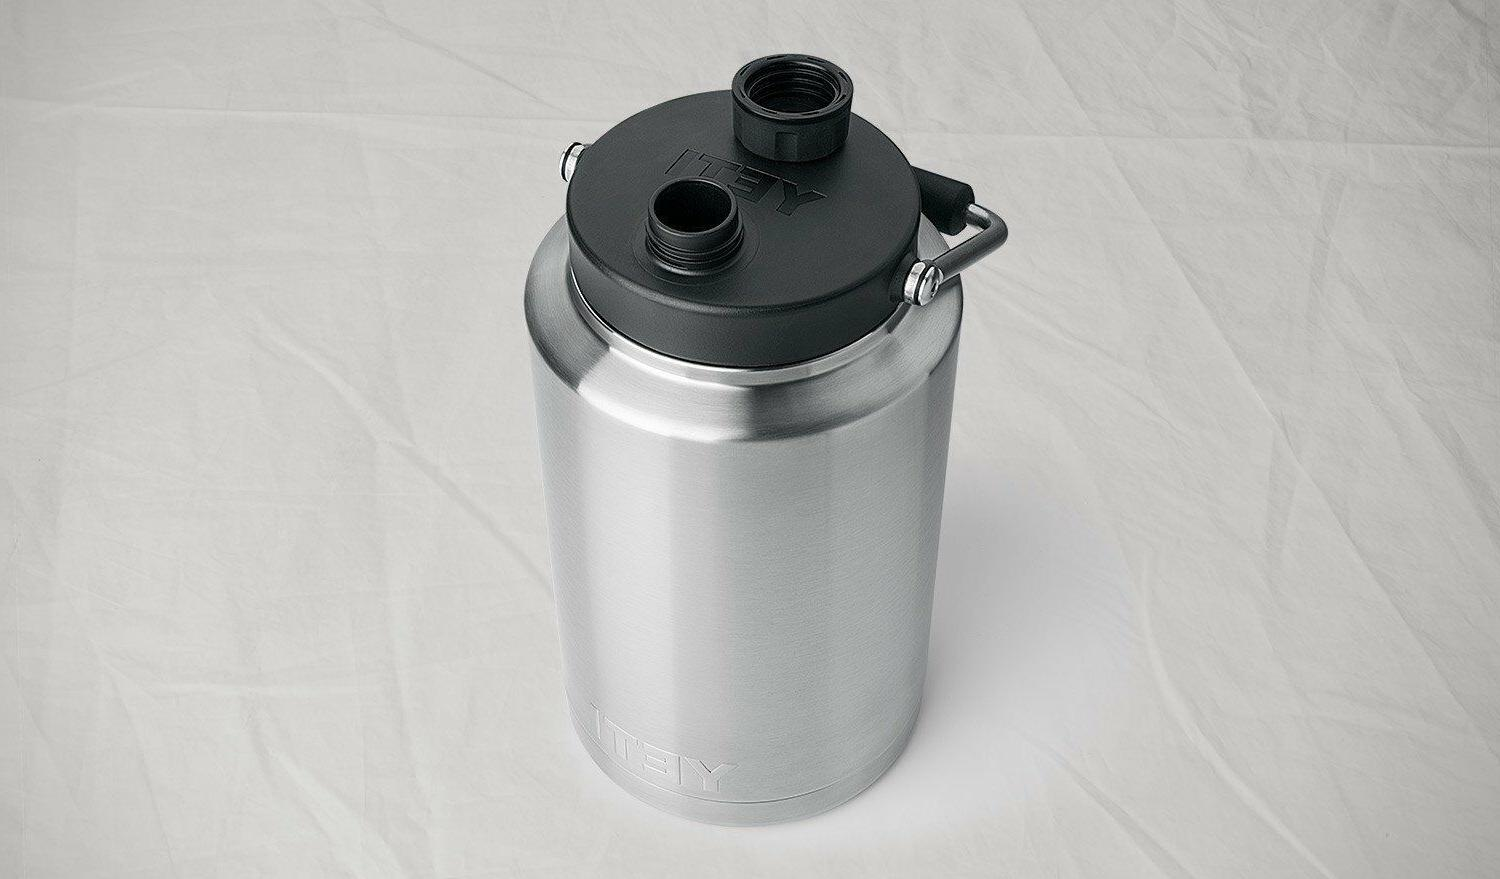 YETI Stainless Steel Gallon Jug with